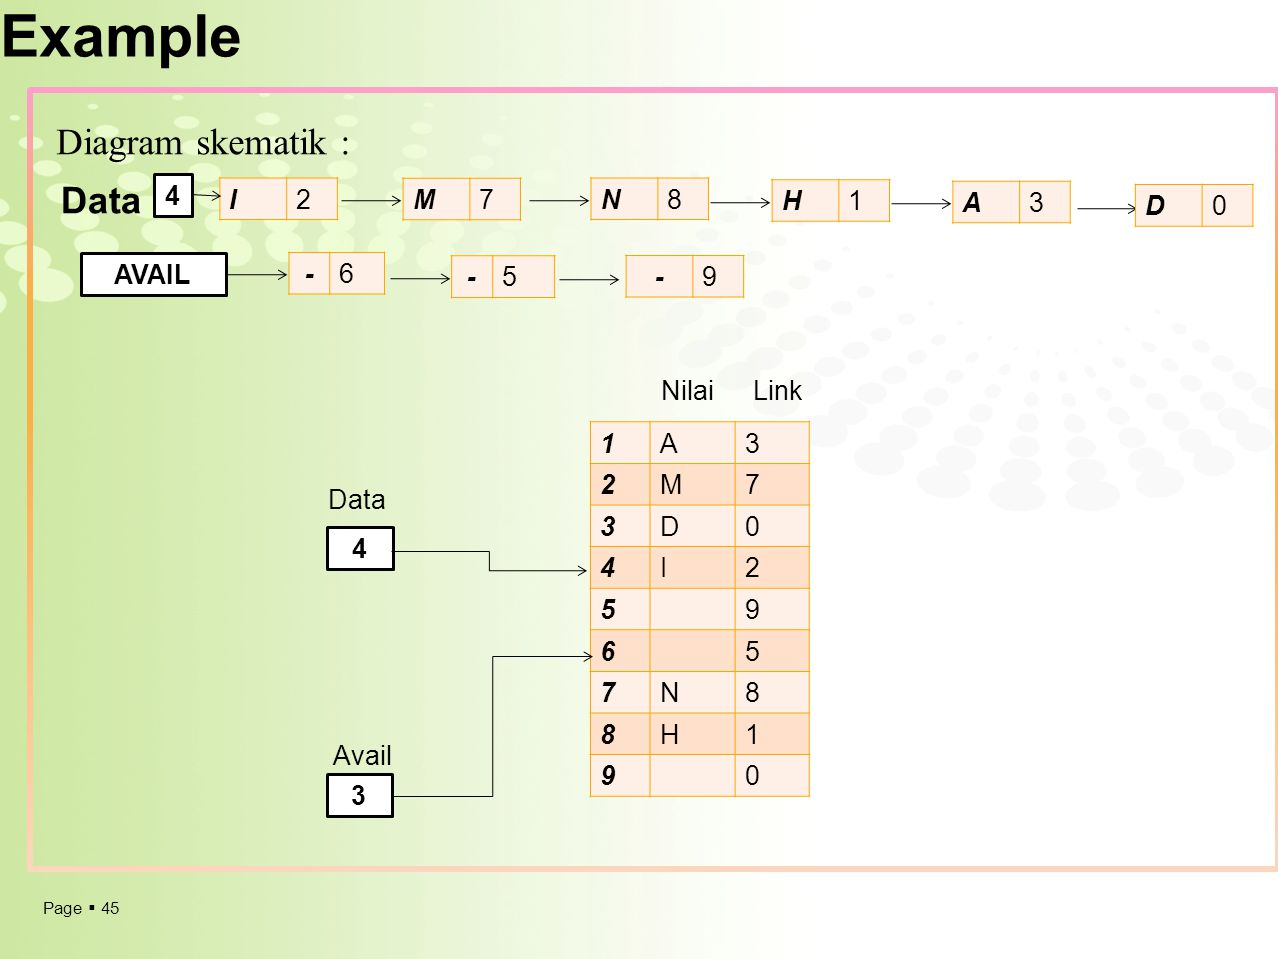 Example Diagram skematik : Data 4 I 2 M 7 N 8 H 1 A 3 D AVAIL - 6 - 5